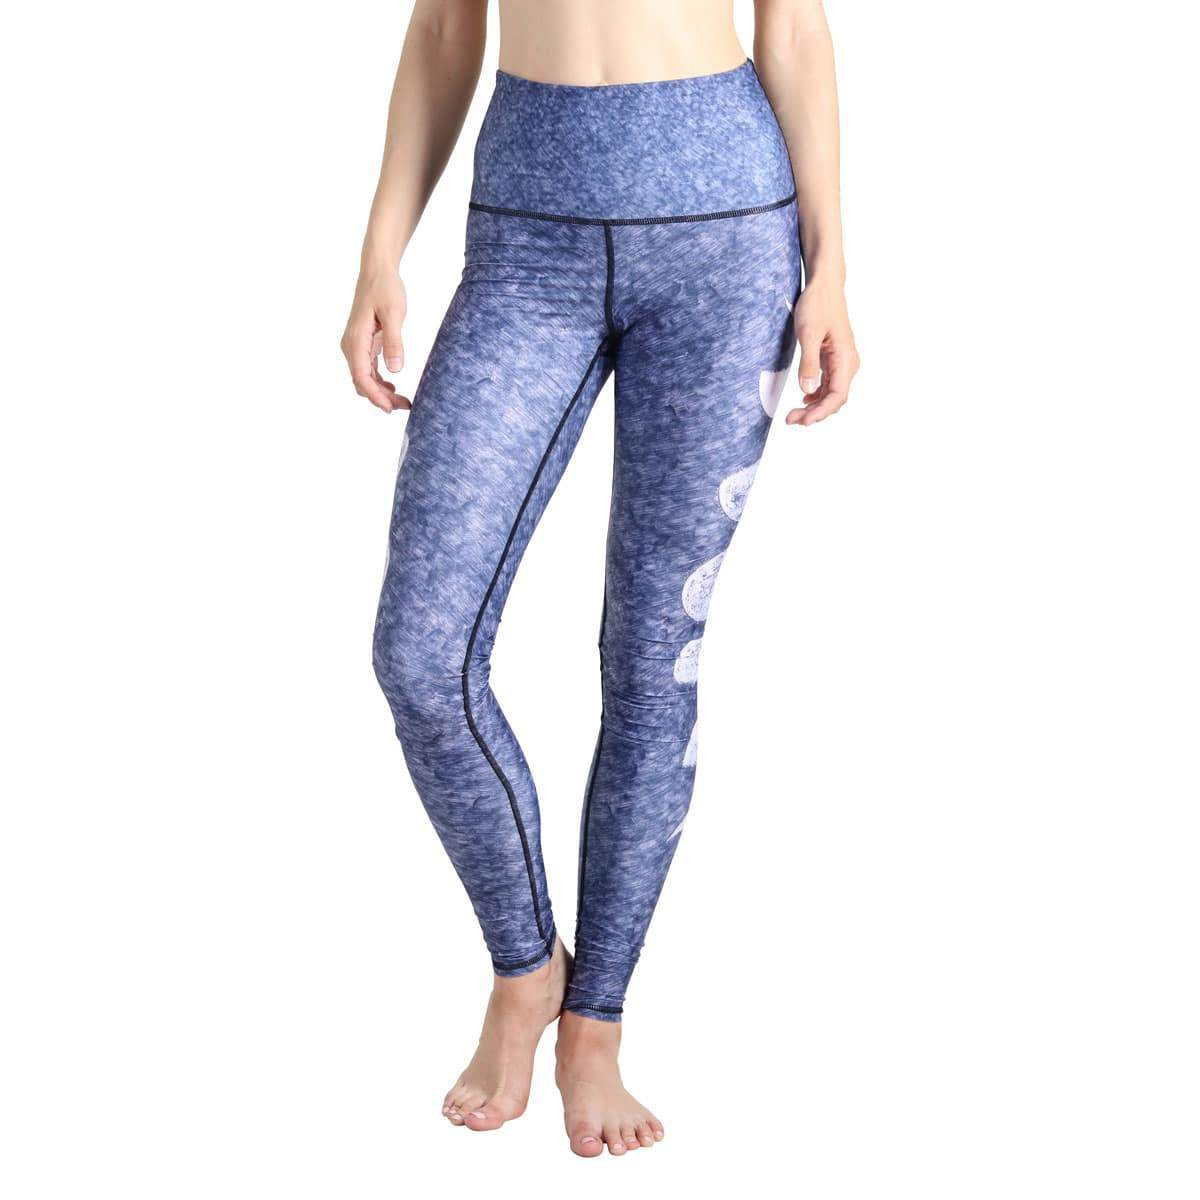 Just_A_Phase_Legging_Front1-min (1).jpg